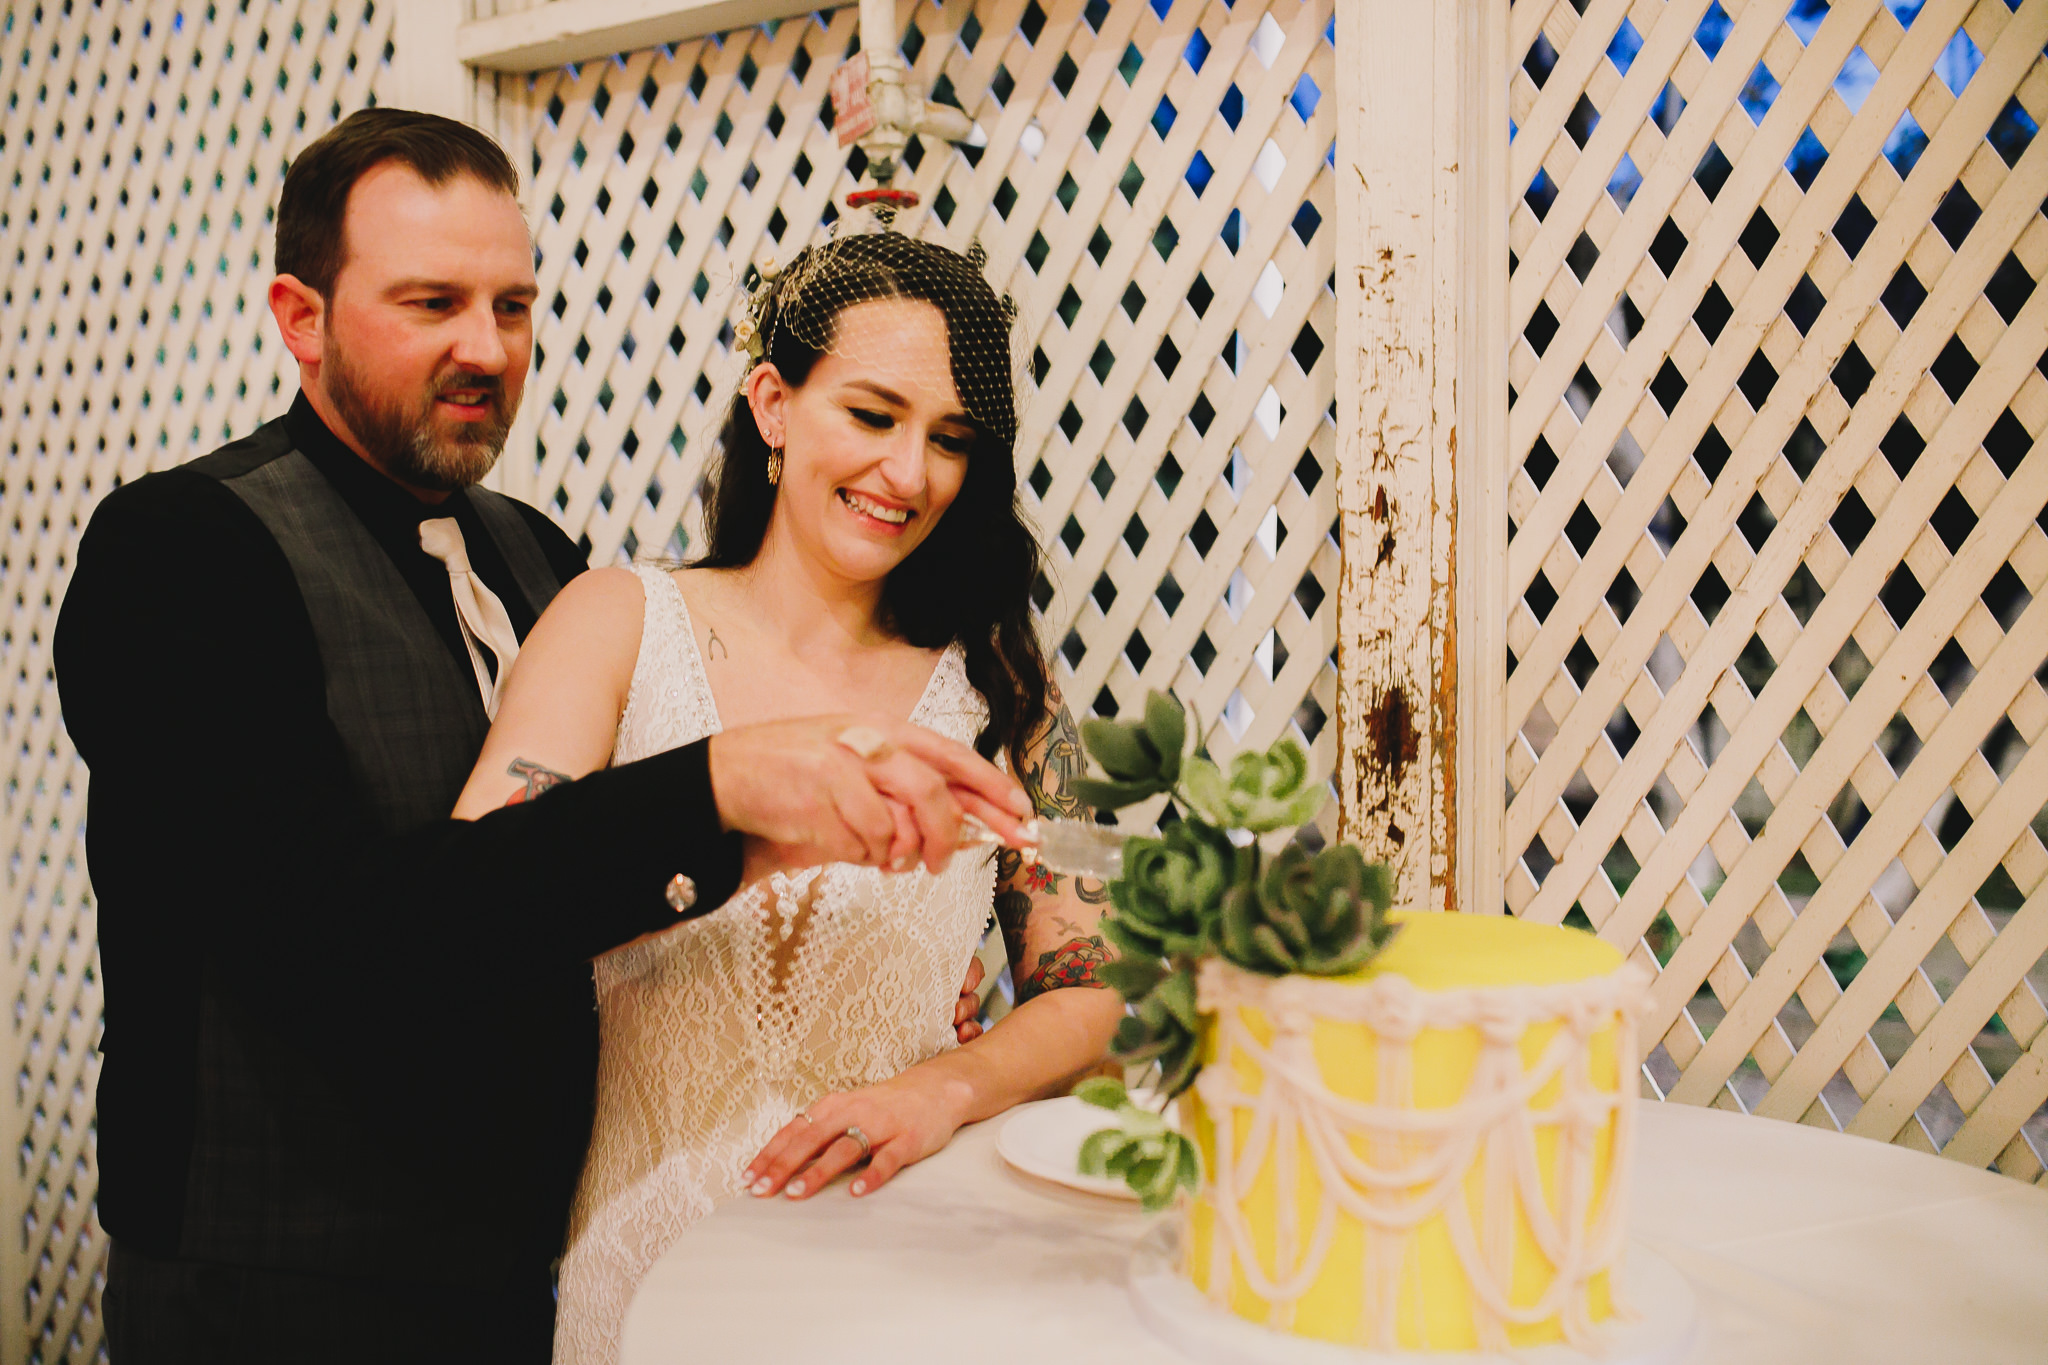 Archer Inspired Photography Sara and Aaron Winchester Mystery House NorCal San Jose California Wedding Photographer-540.jpg